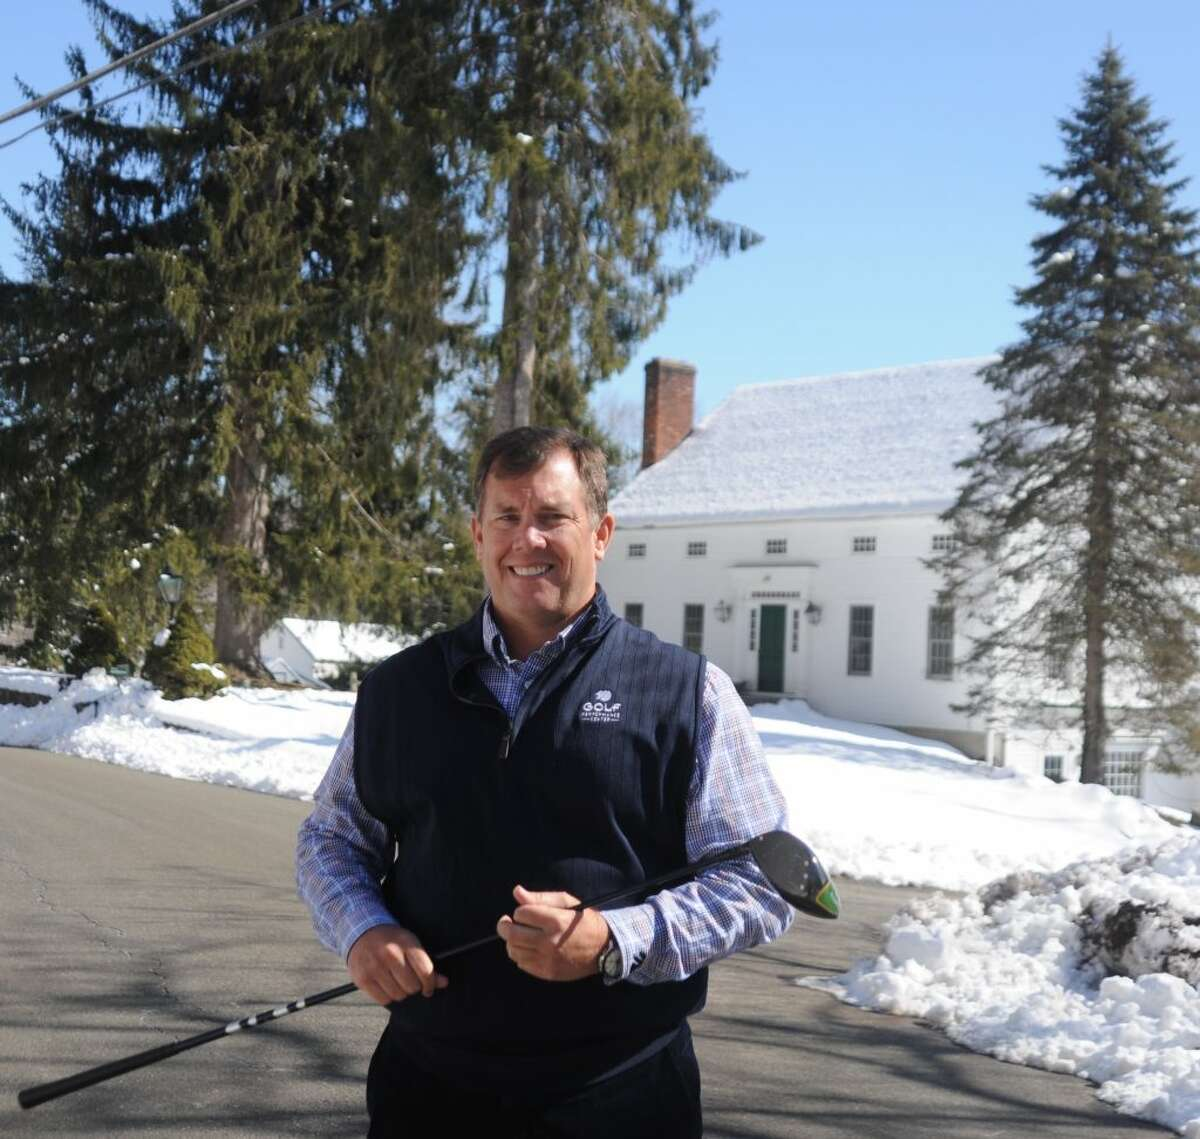 Roger Knick of the Golf Performance Center in Ridgefield plans a golf academy with boarding students at the former Stonehenge Inn. - Macklin Reid/Hearst Connecticut Media